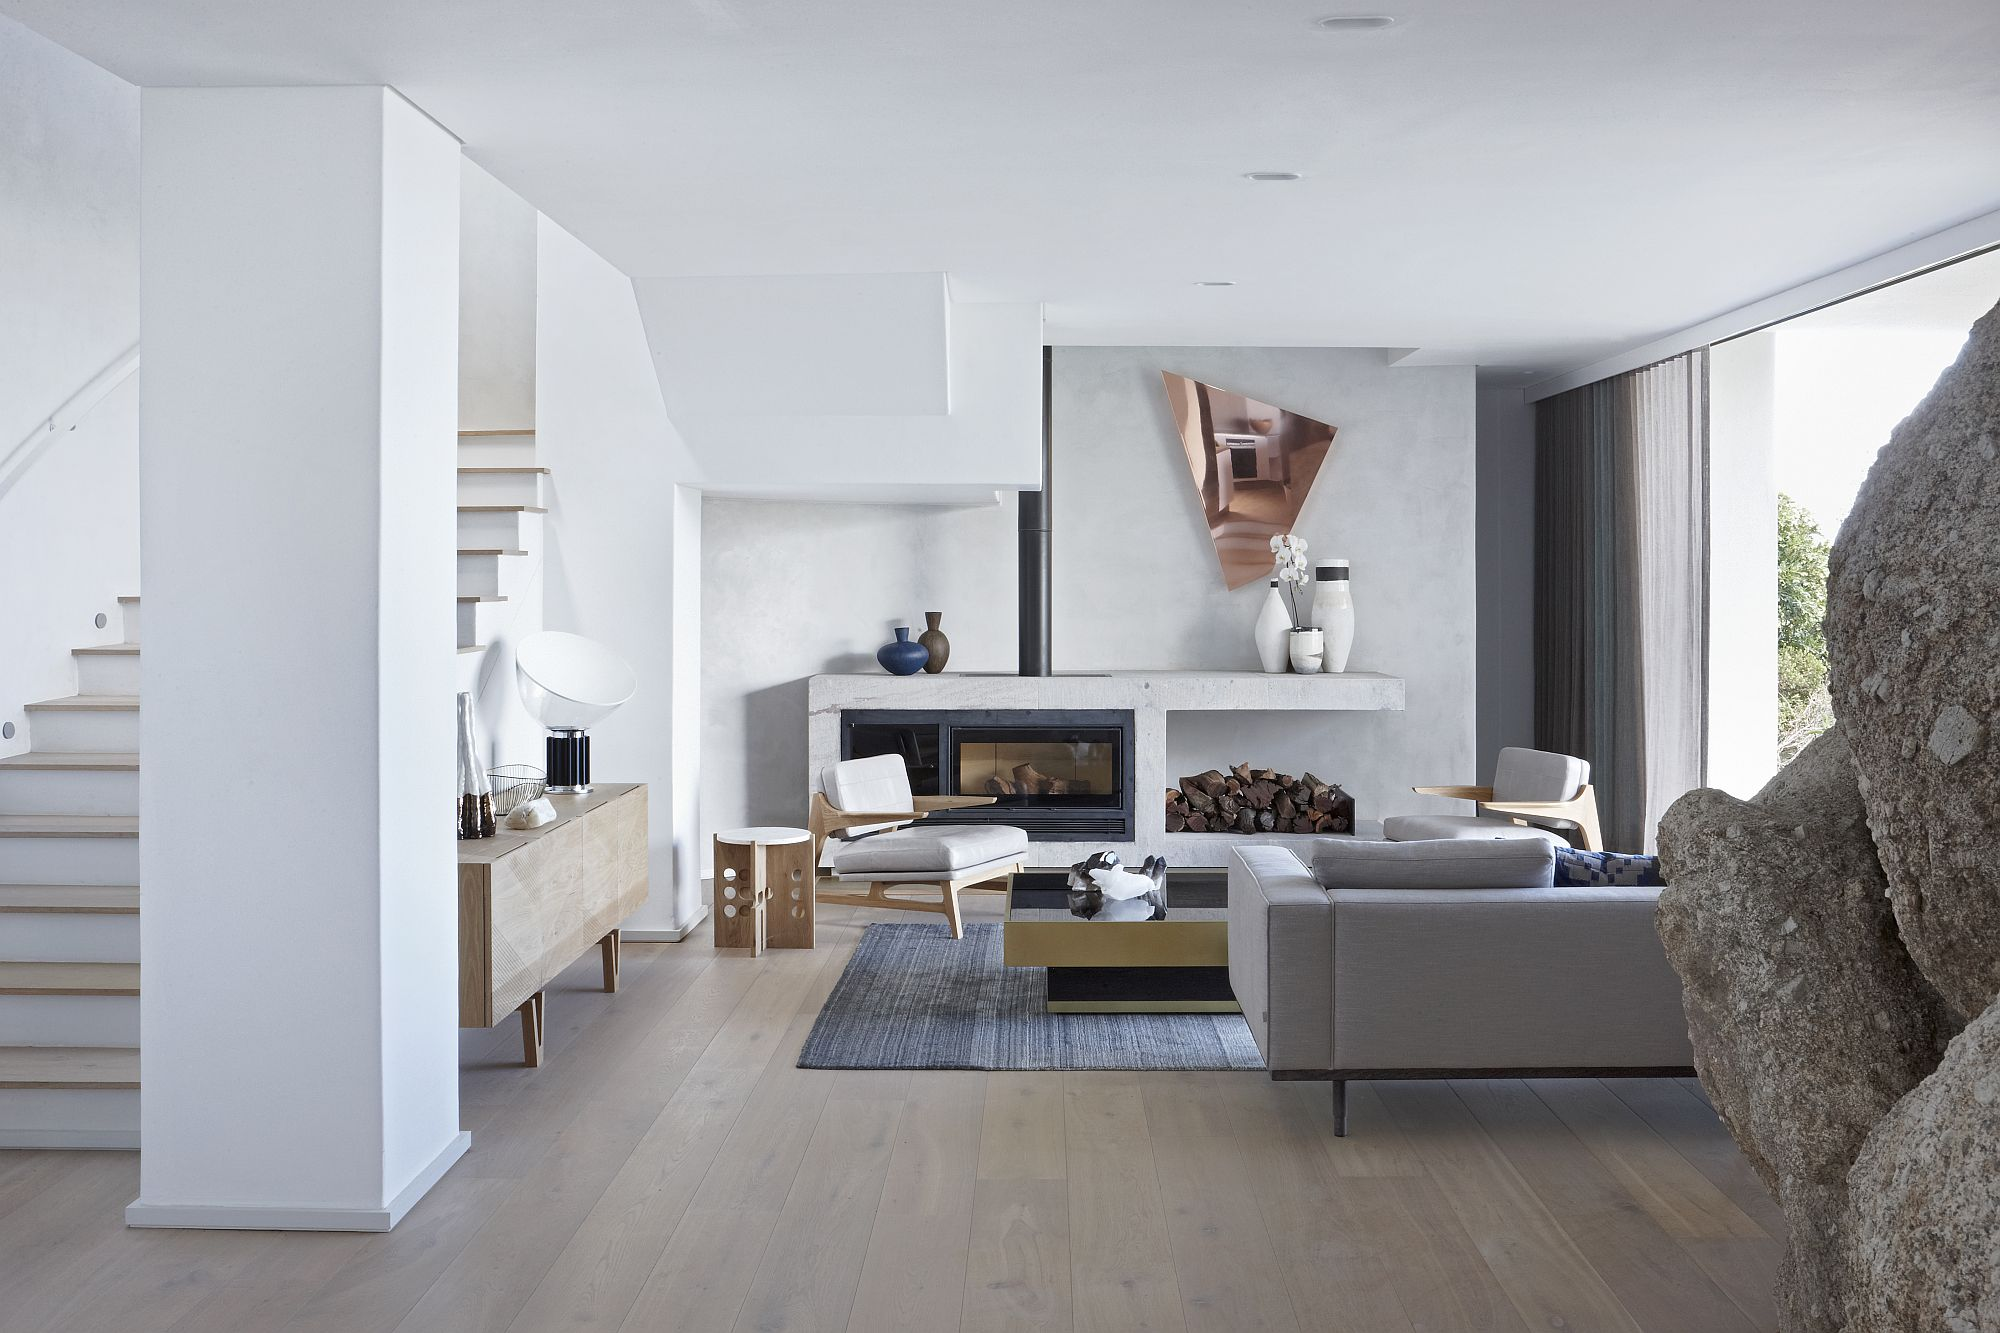 Minimal living room in white with a giant boulder that is a part of the interior